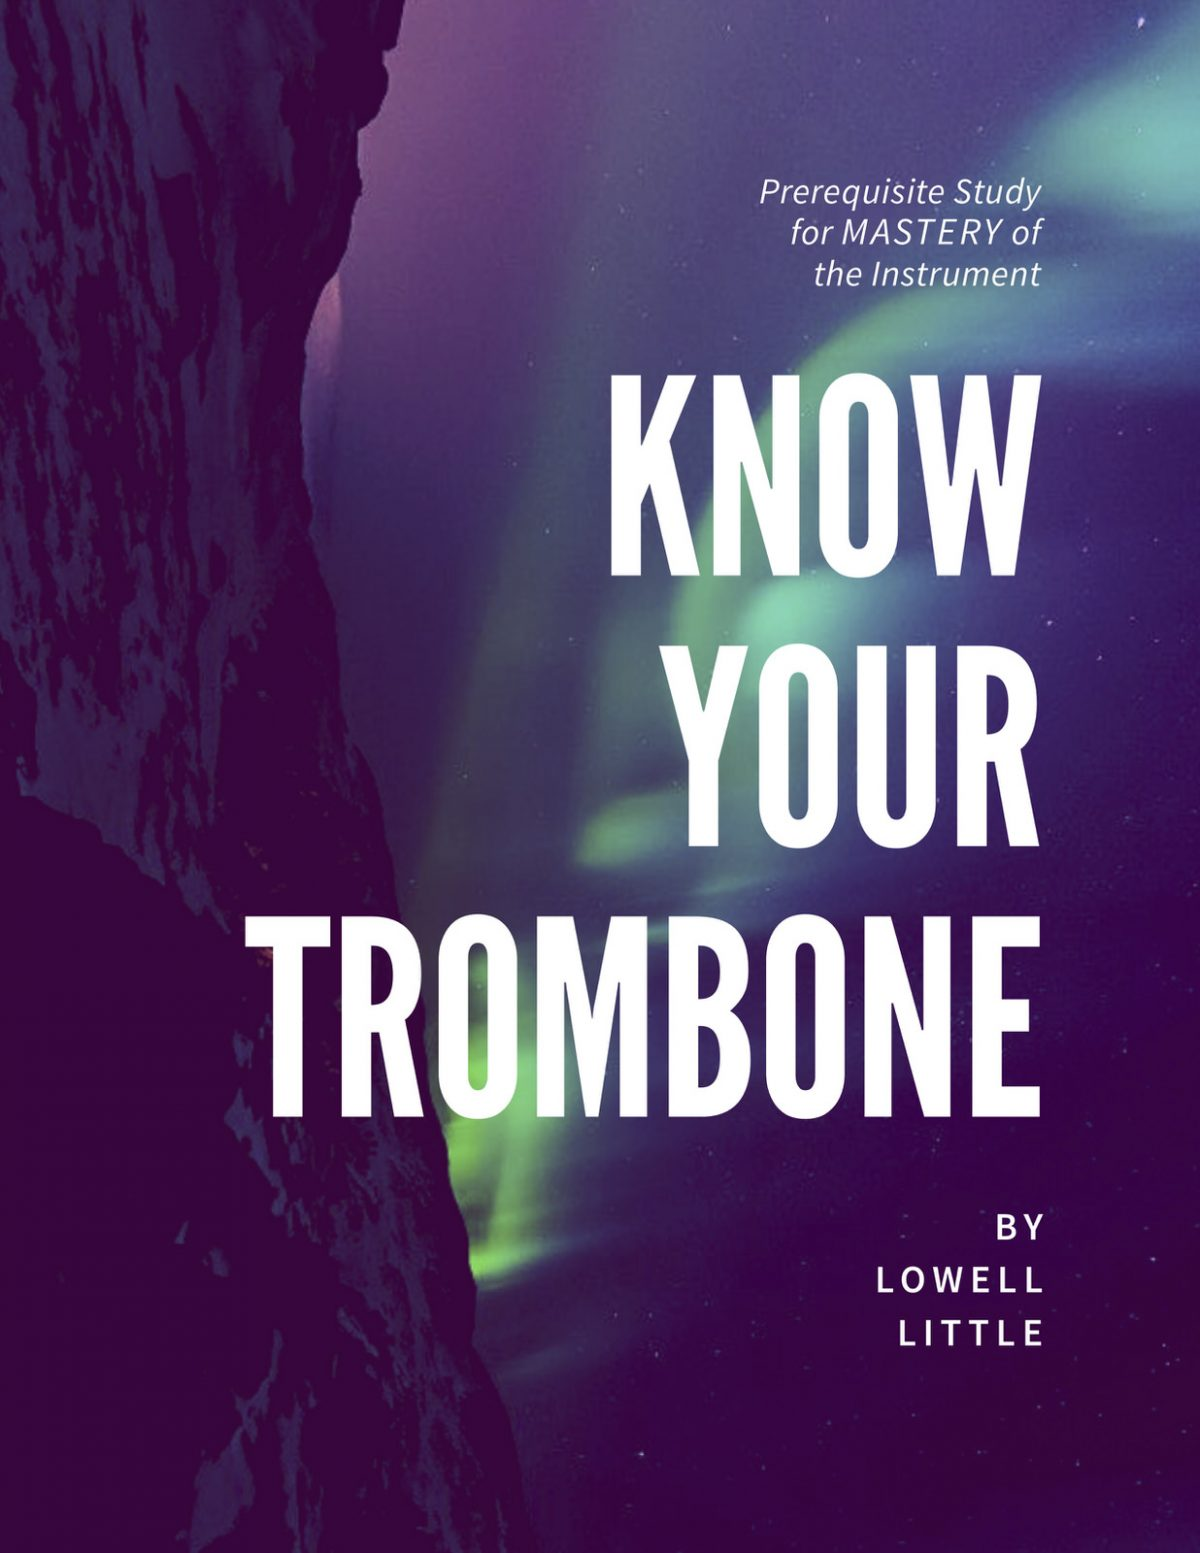 Little, Know Your Trombone